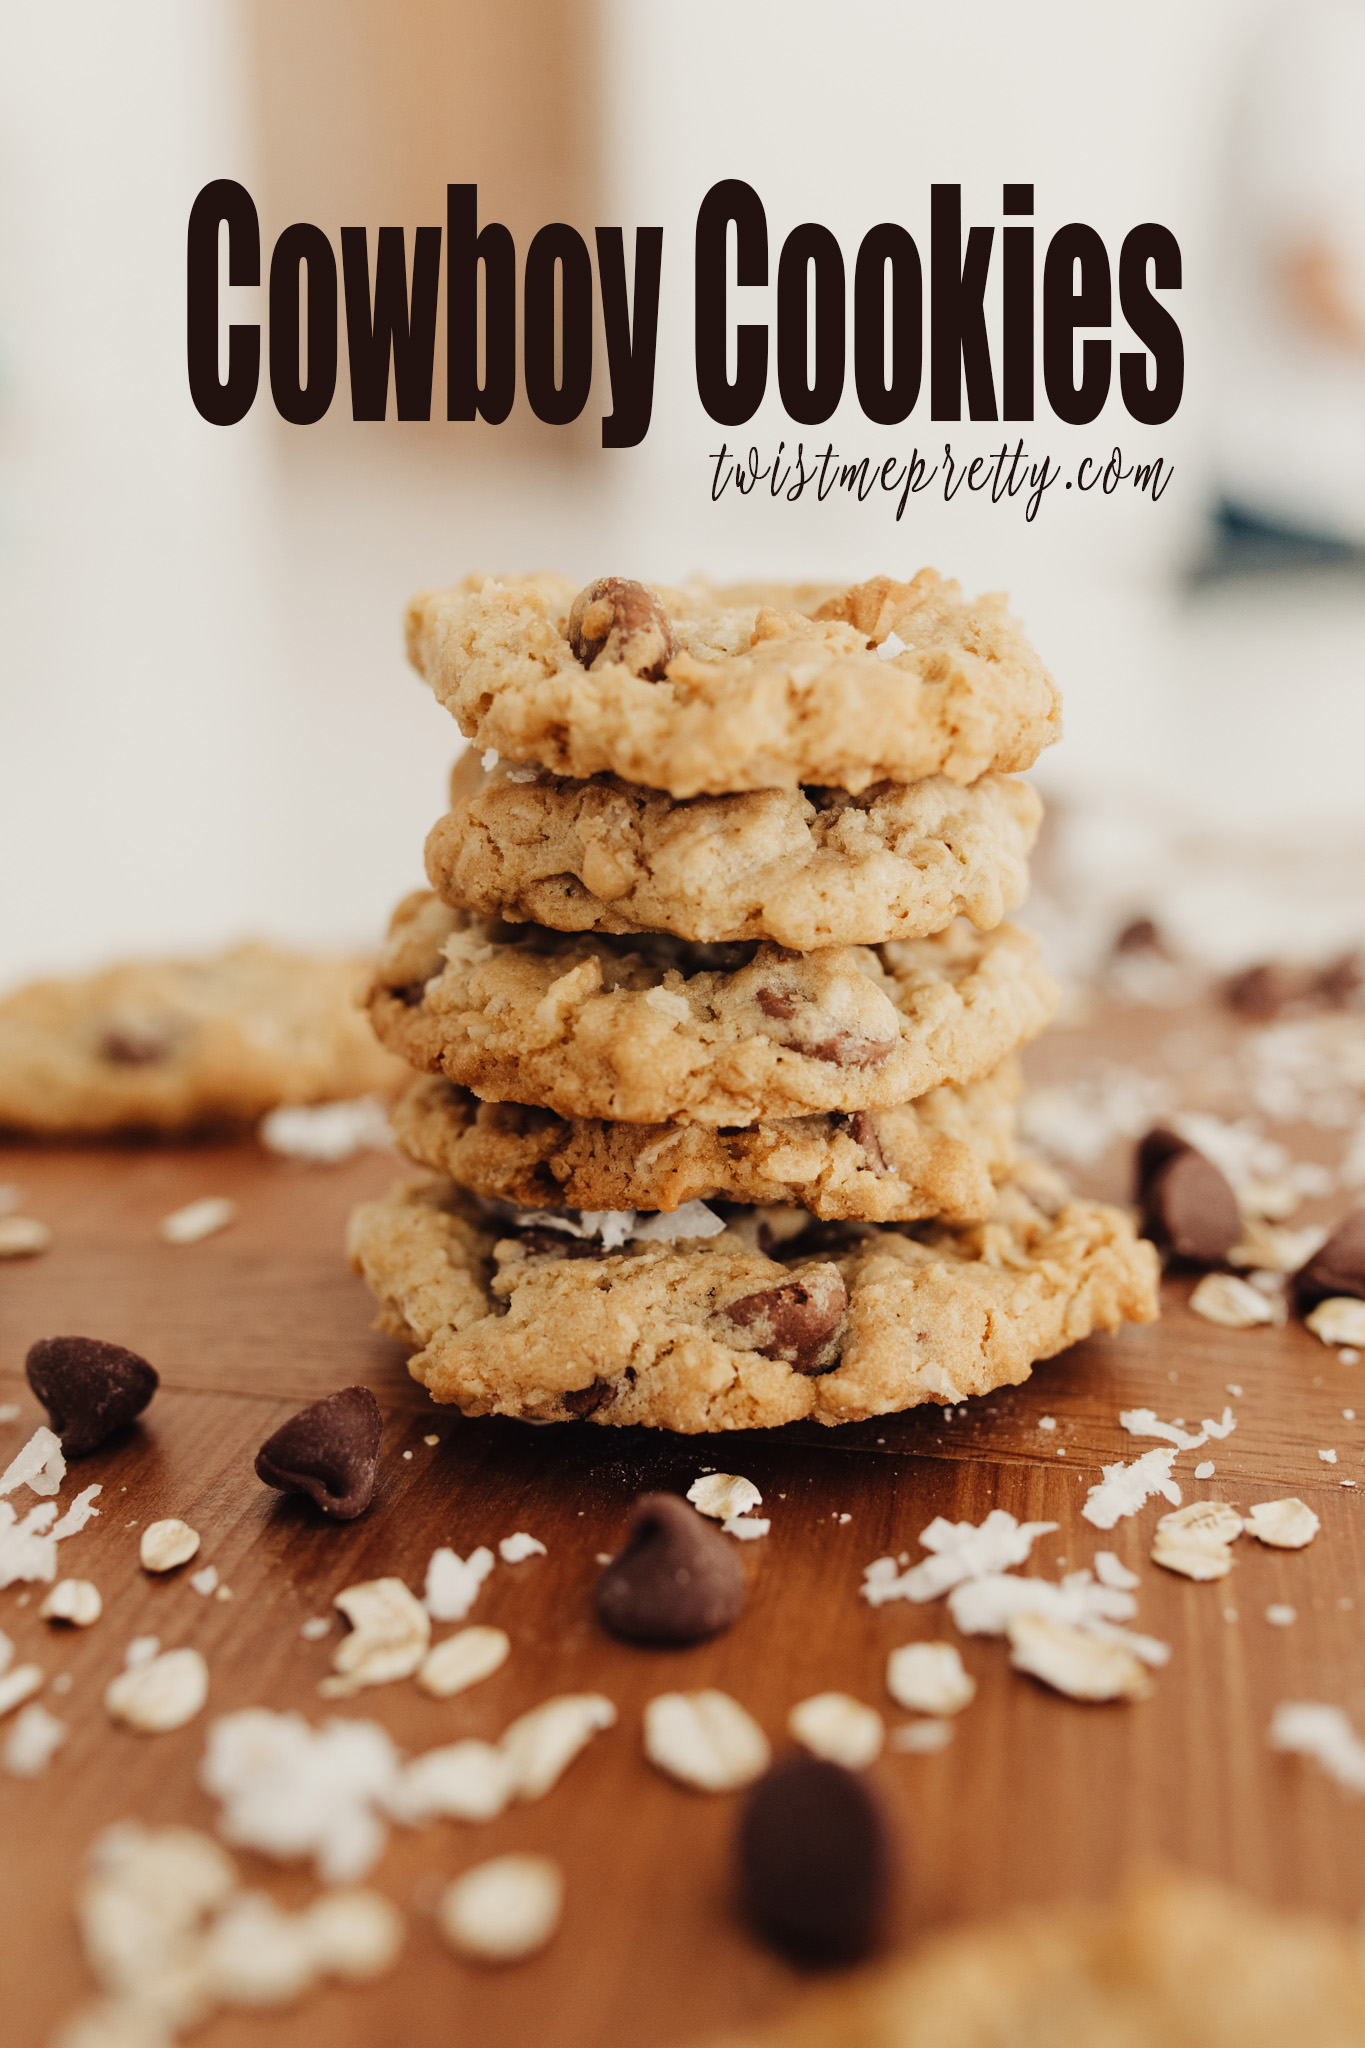 Cowboy Cookies The Best Chocolate Chip Cookies Ever